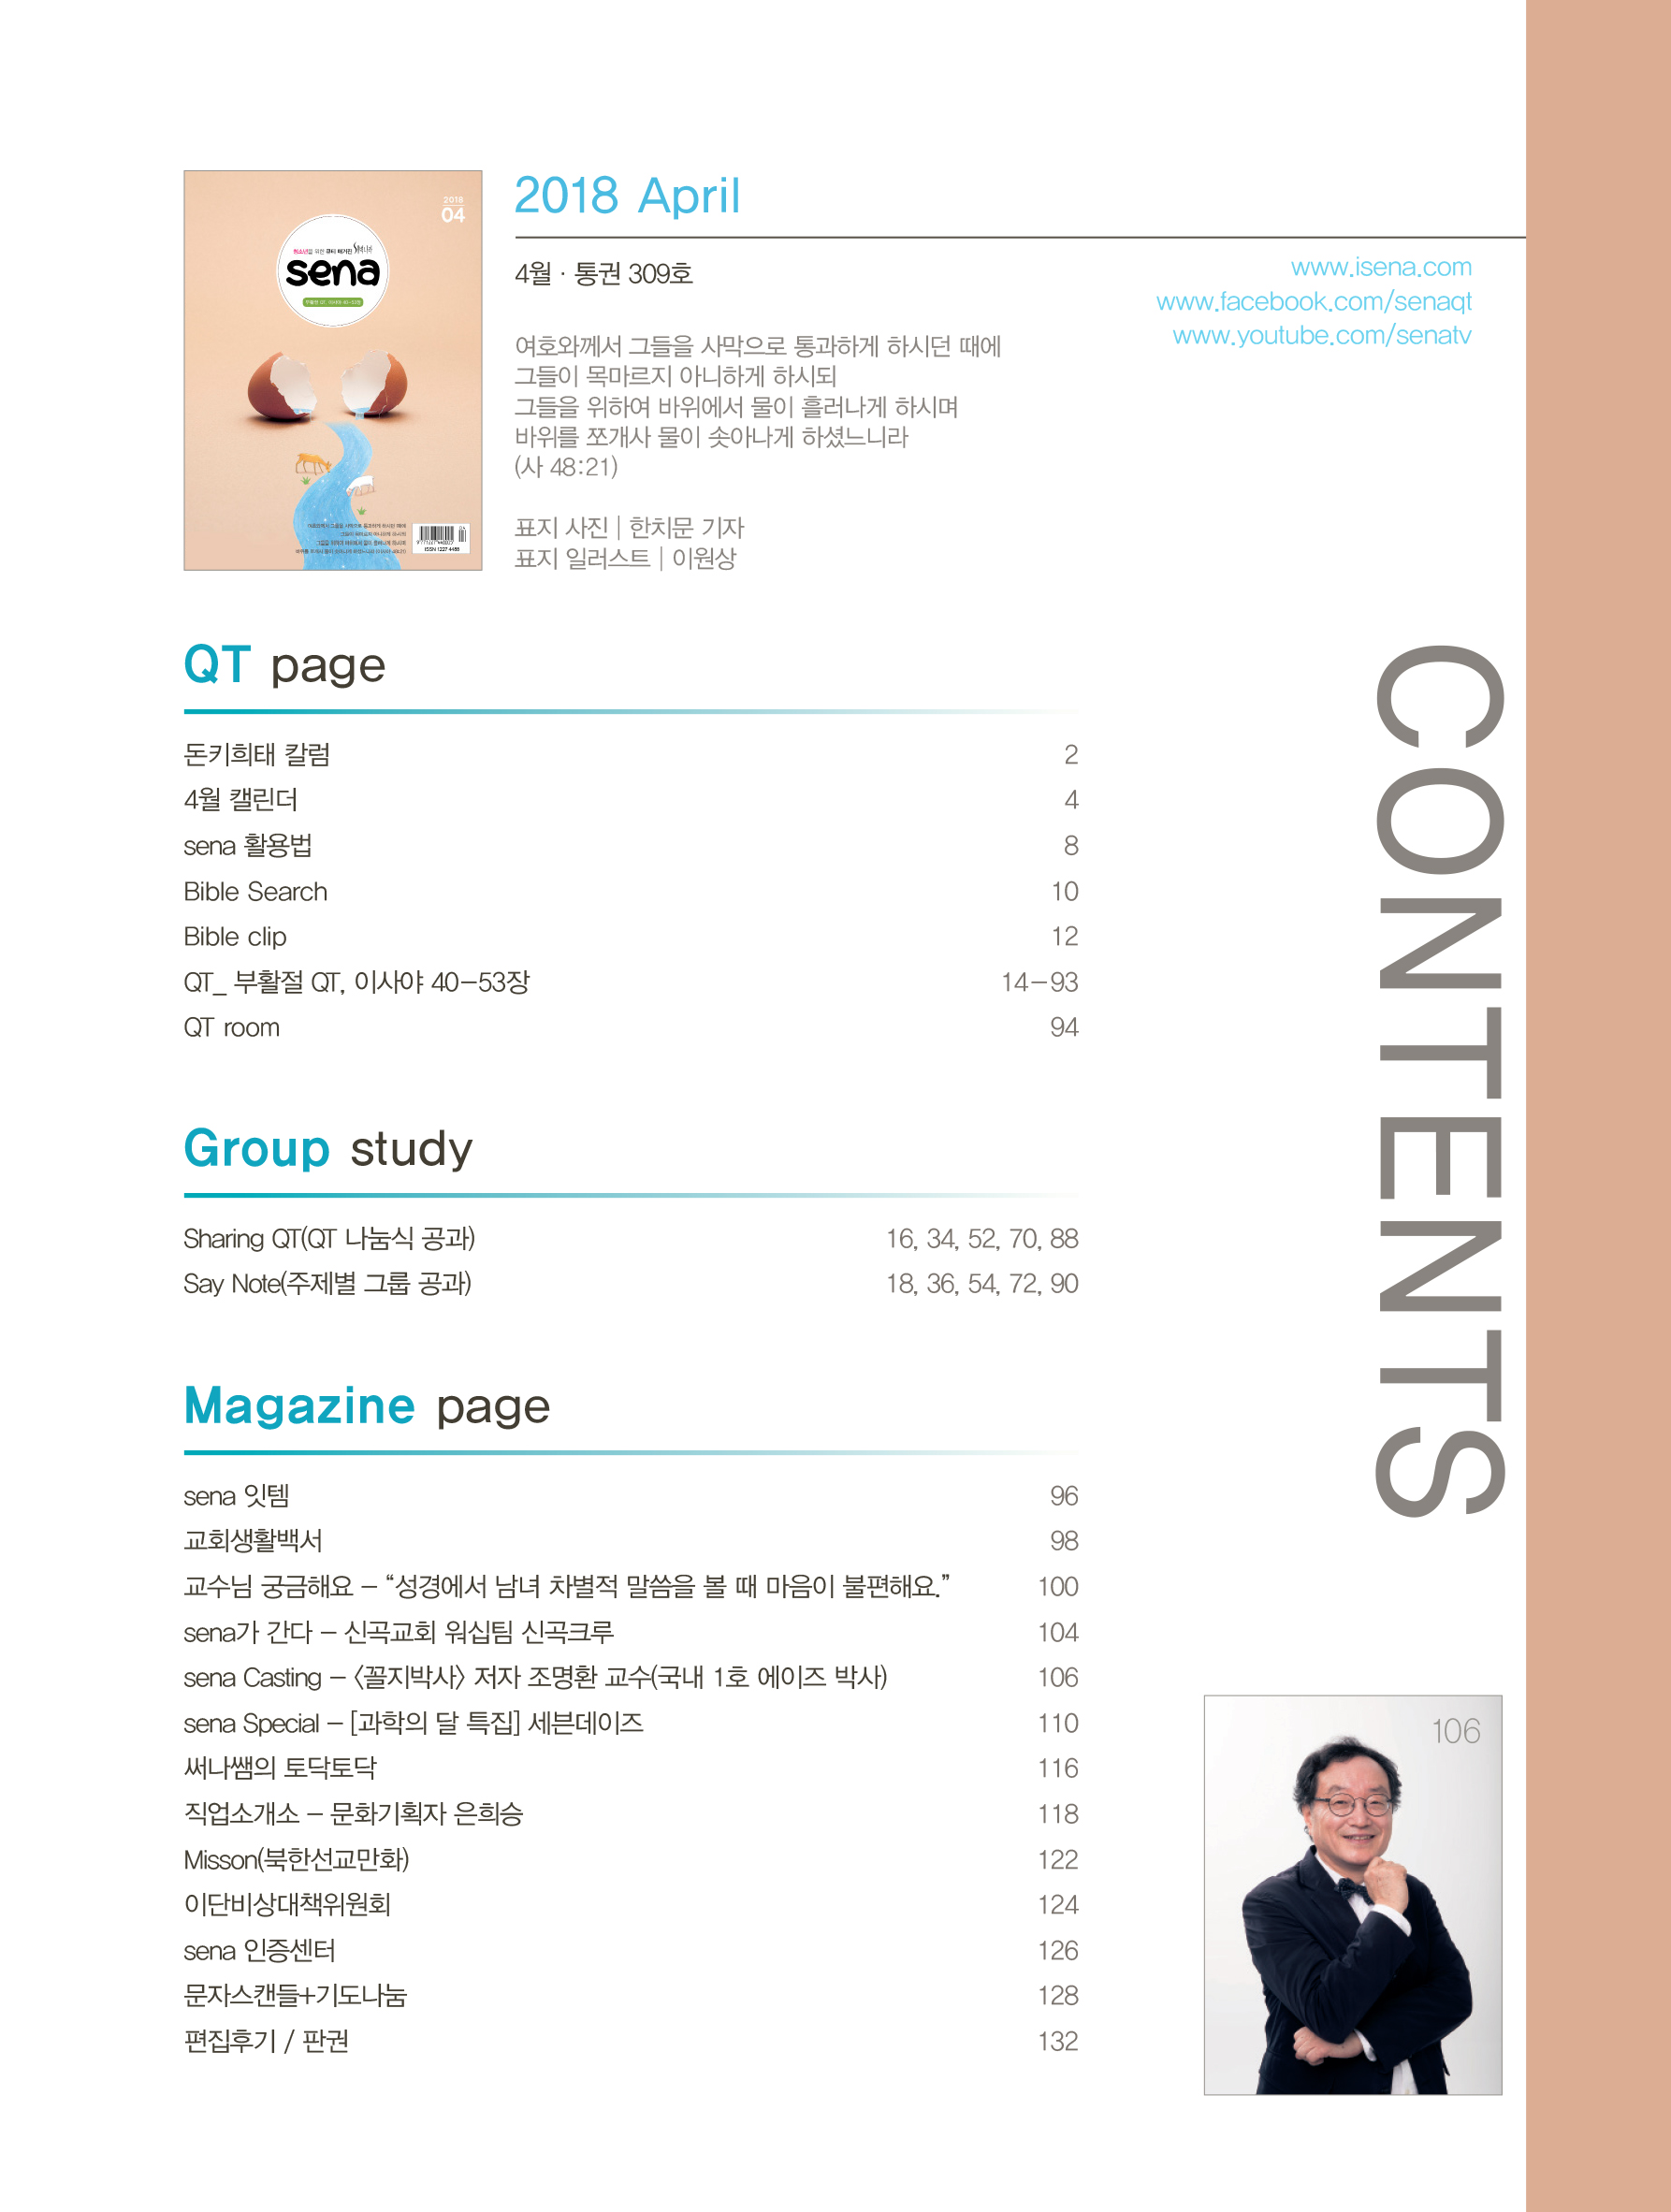 201804 contents